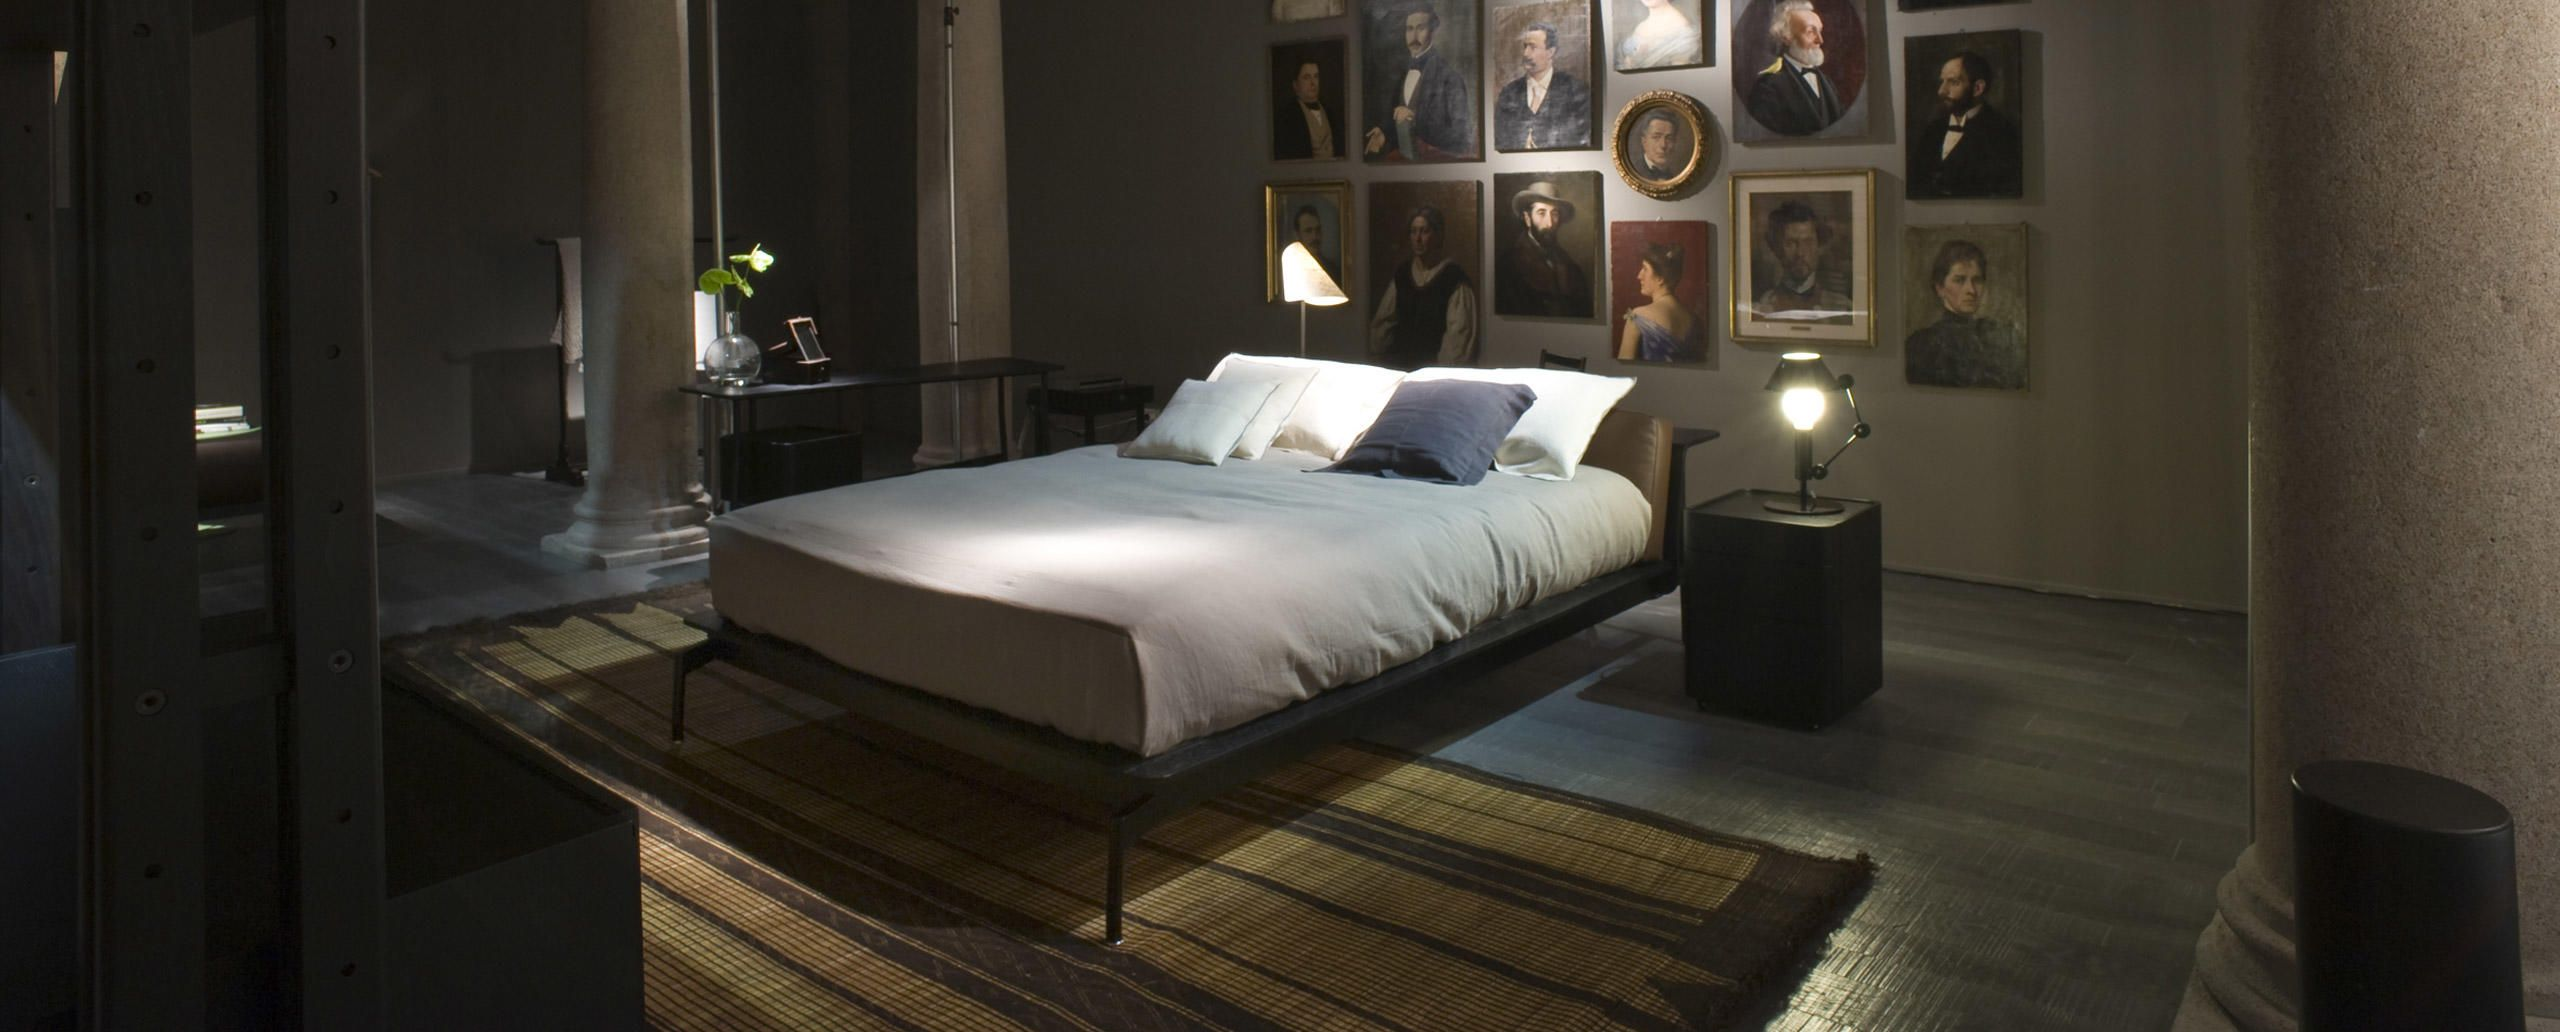 Beds L41 Sled Designed By Rodolfo Dordoni Cassina With